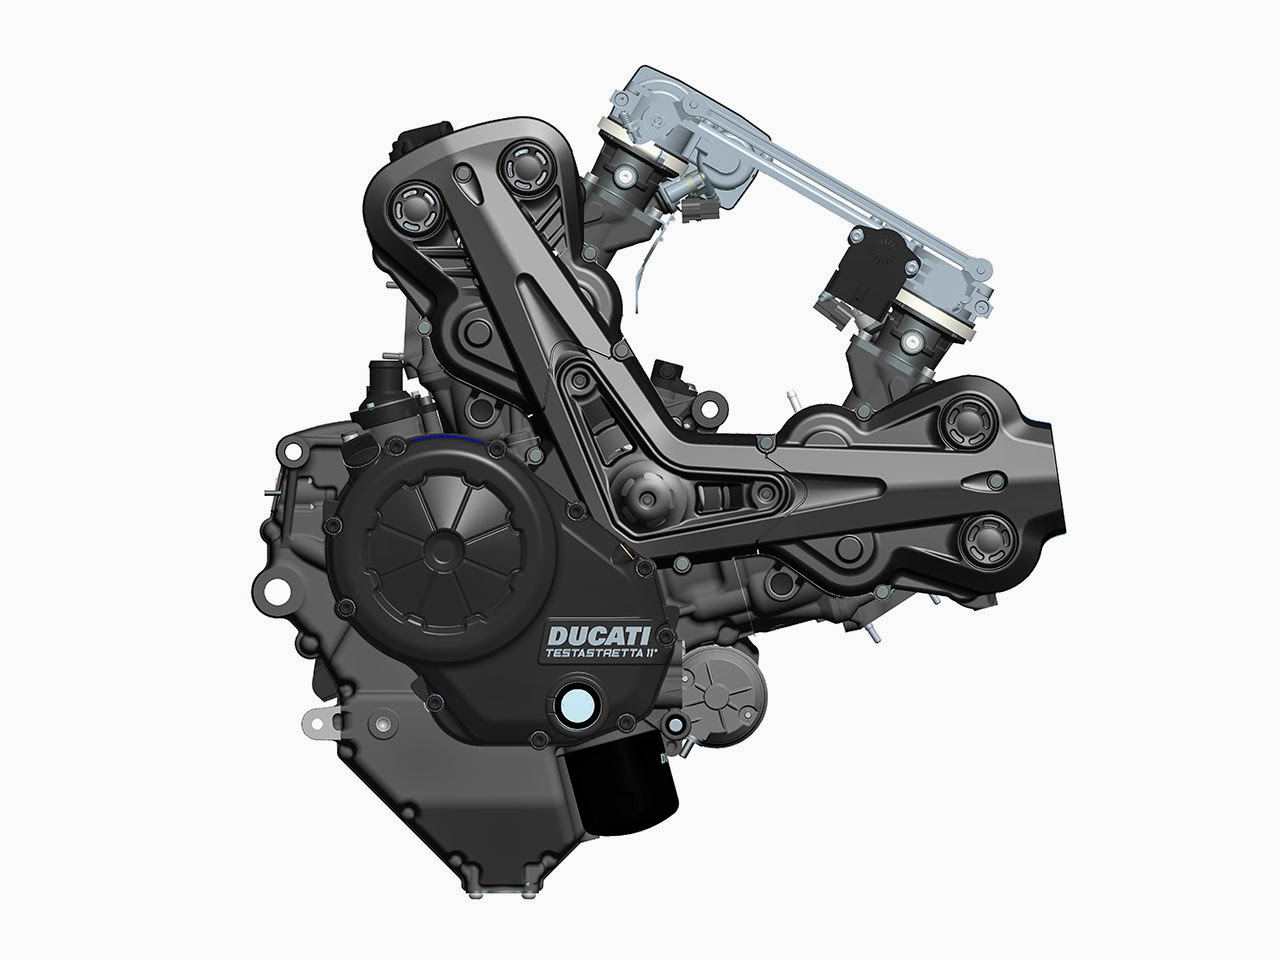 Ducati Diavel engine